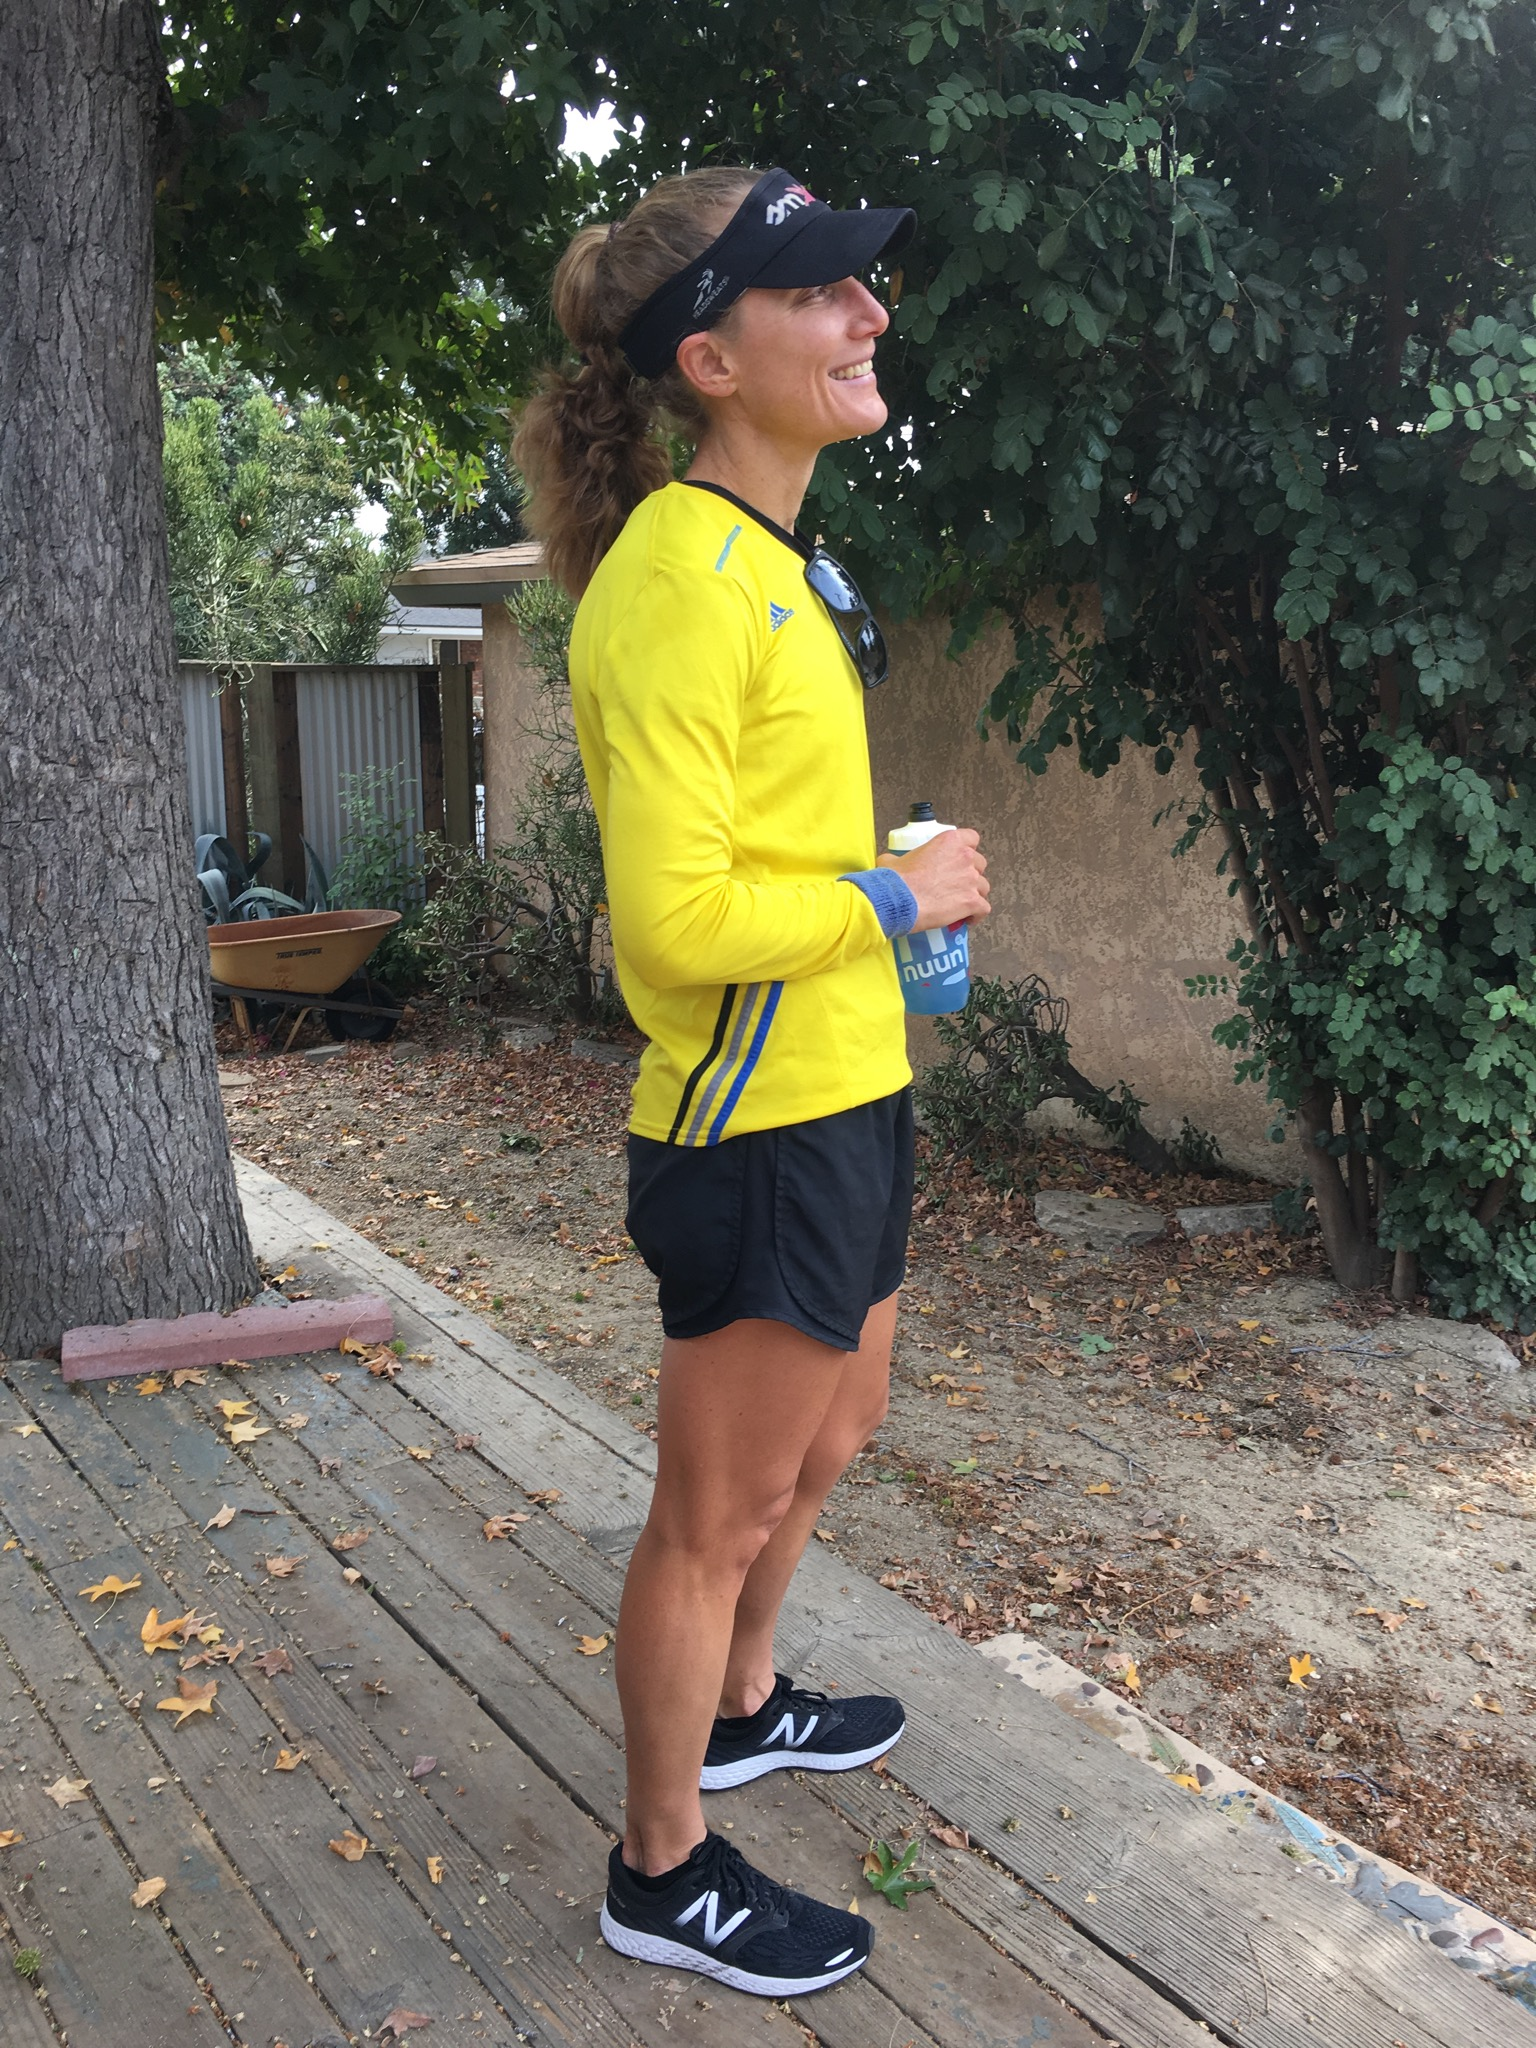 Happy, contemplative moment after my long run on Sunday.